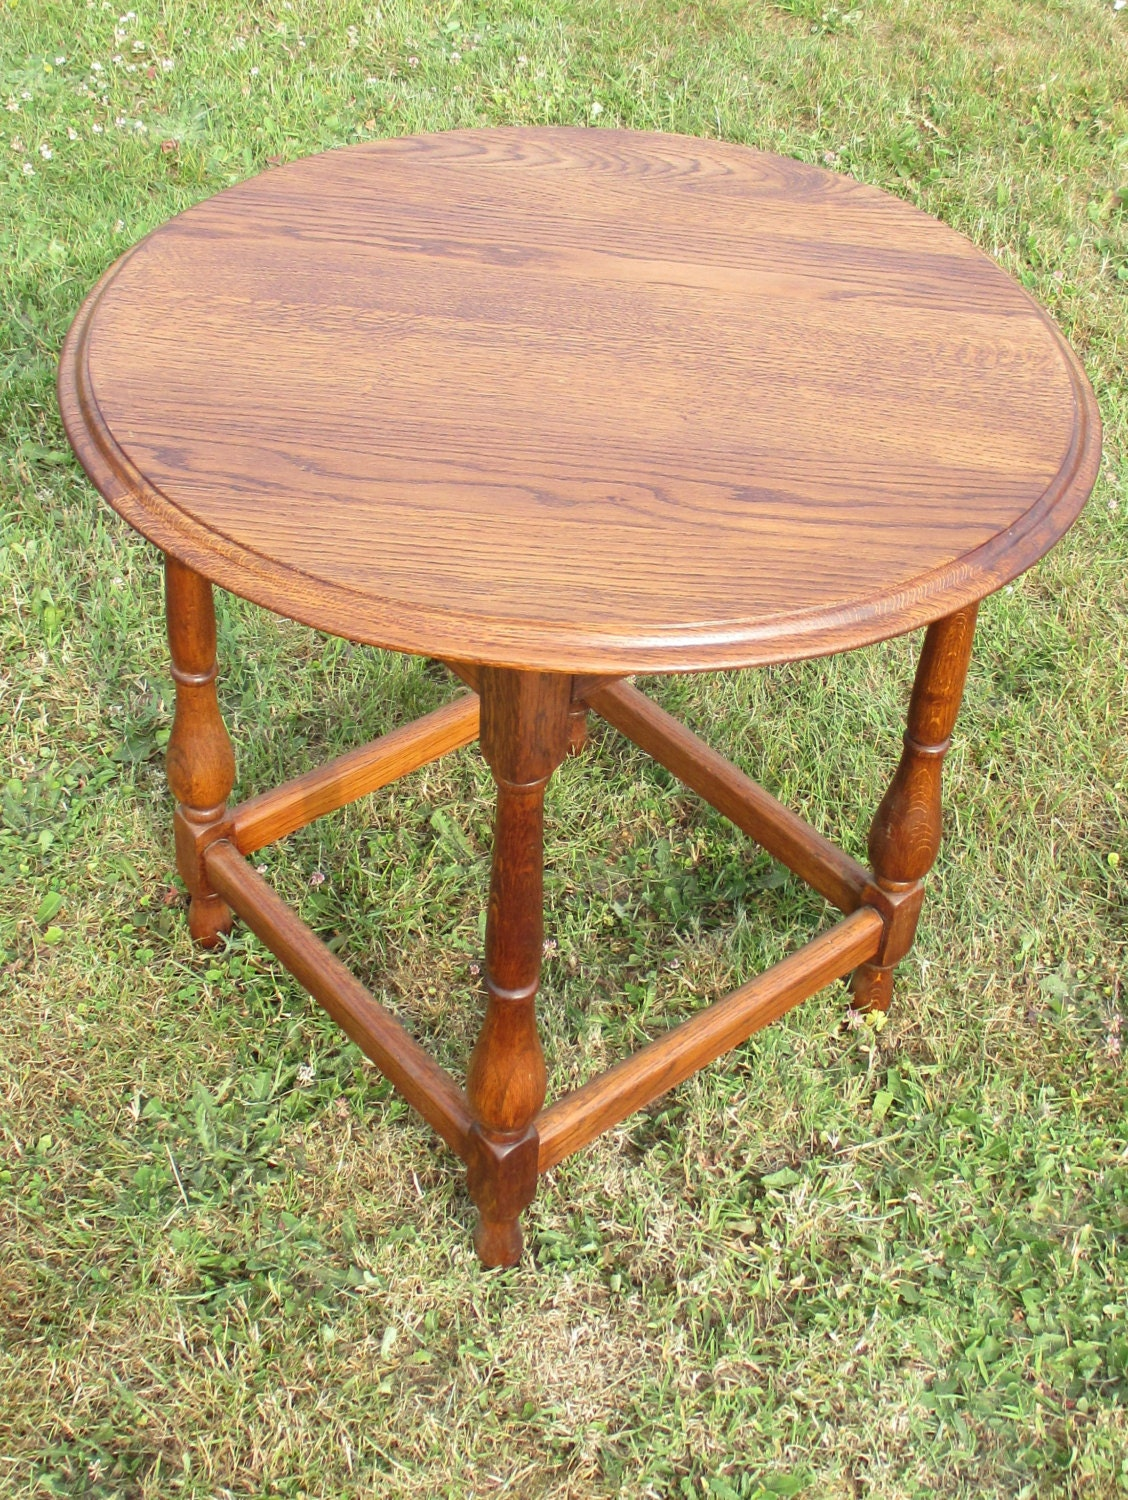 Oak Side Table: Intage Small Round Table Oak Wood Side Table Beautiful